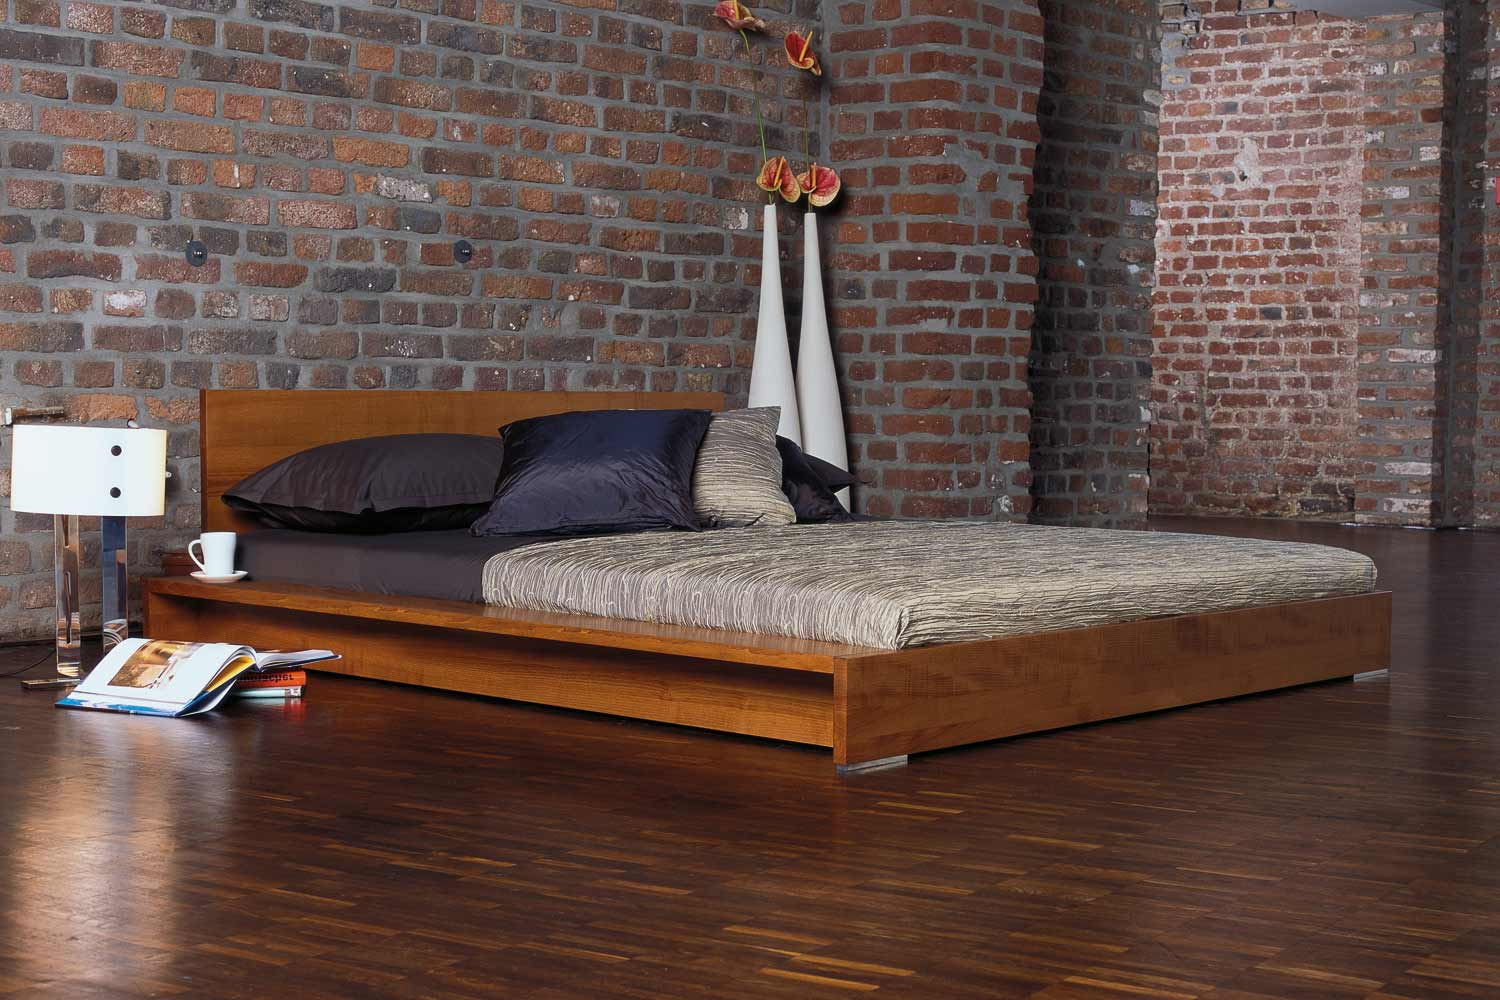 Picture of: 18 Types Of Bed Designs To Choose For Your Home